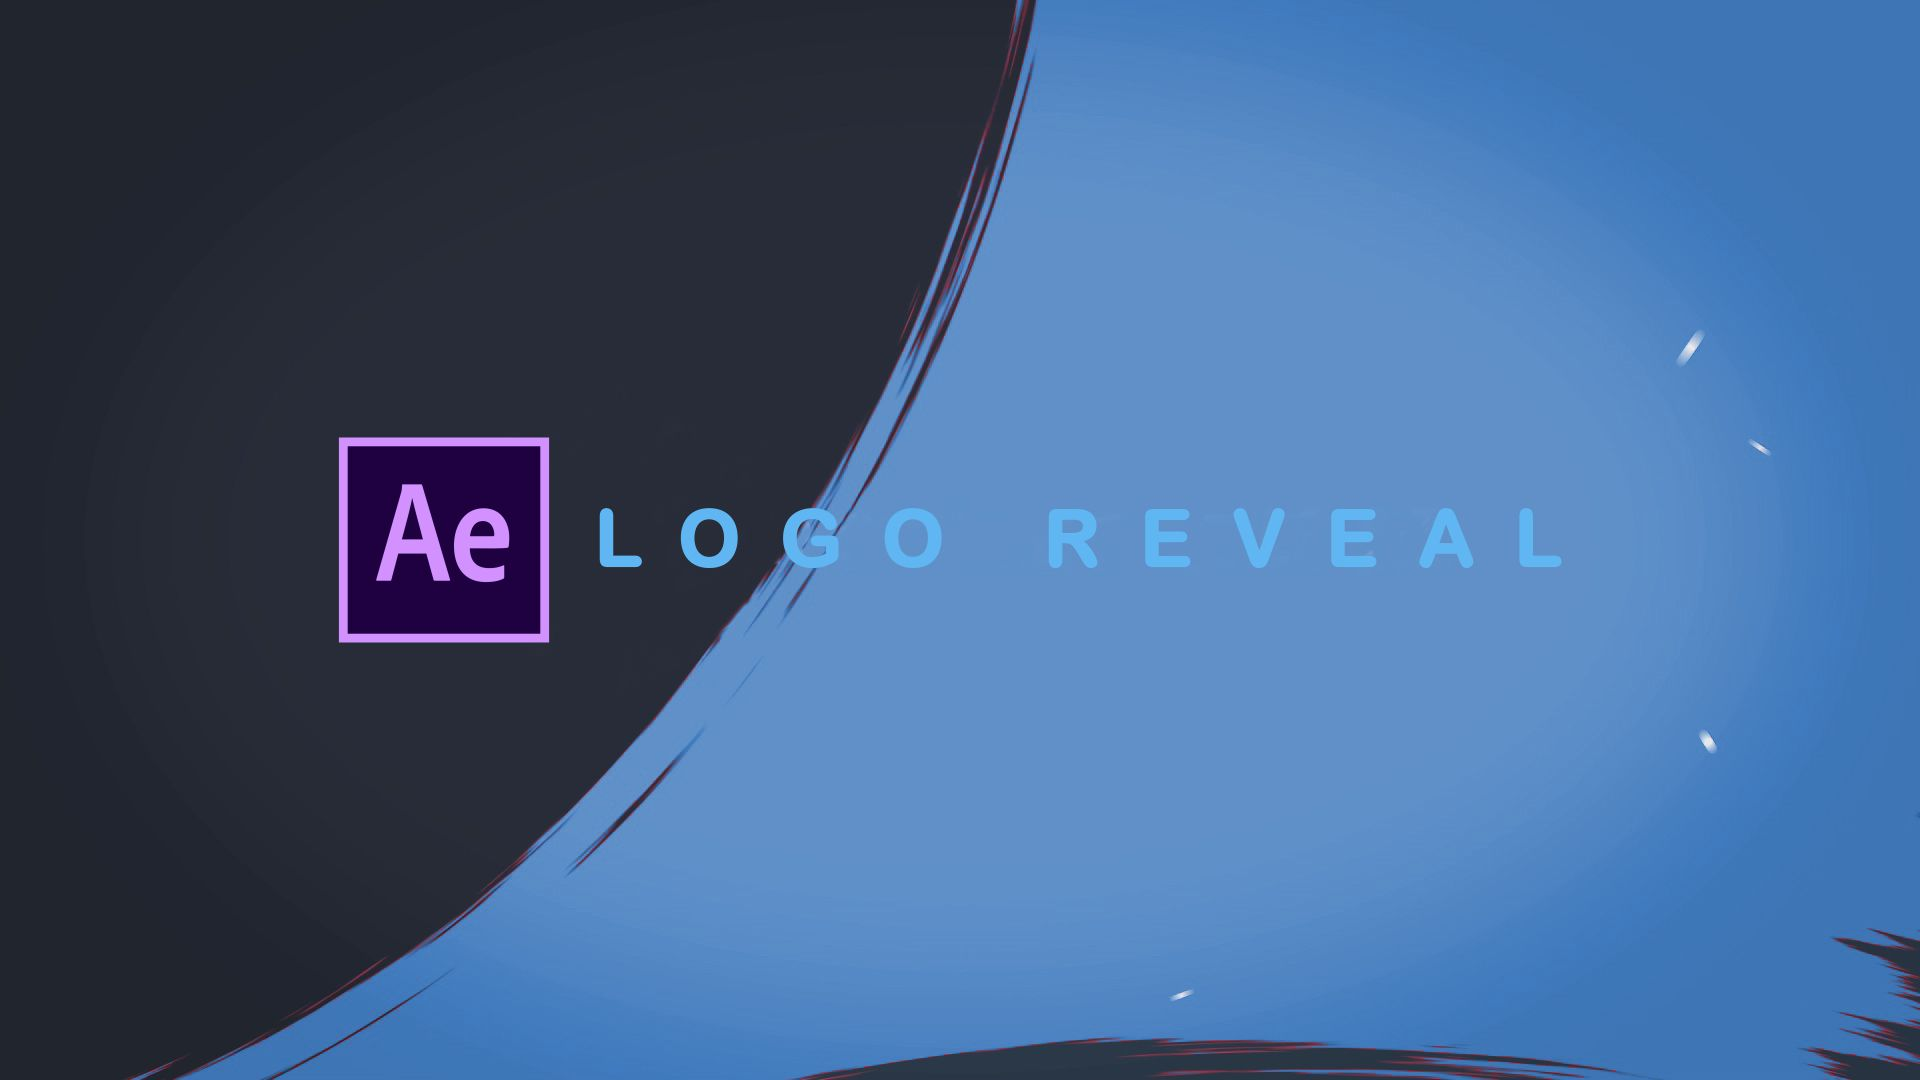 006 Shocking Adobe After Effect Logo Template Free Download Sample  Cs6 Title AnimationFull